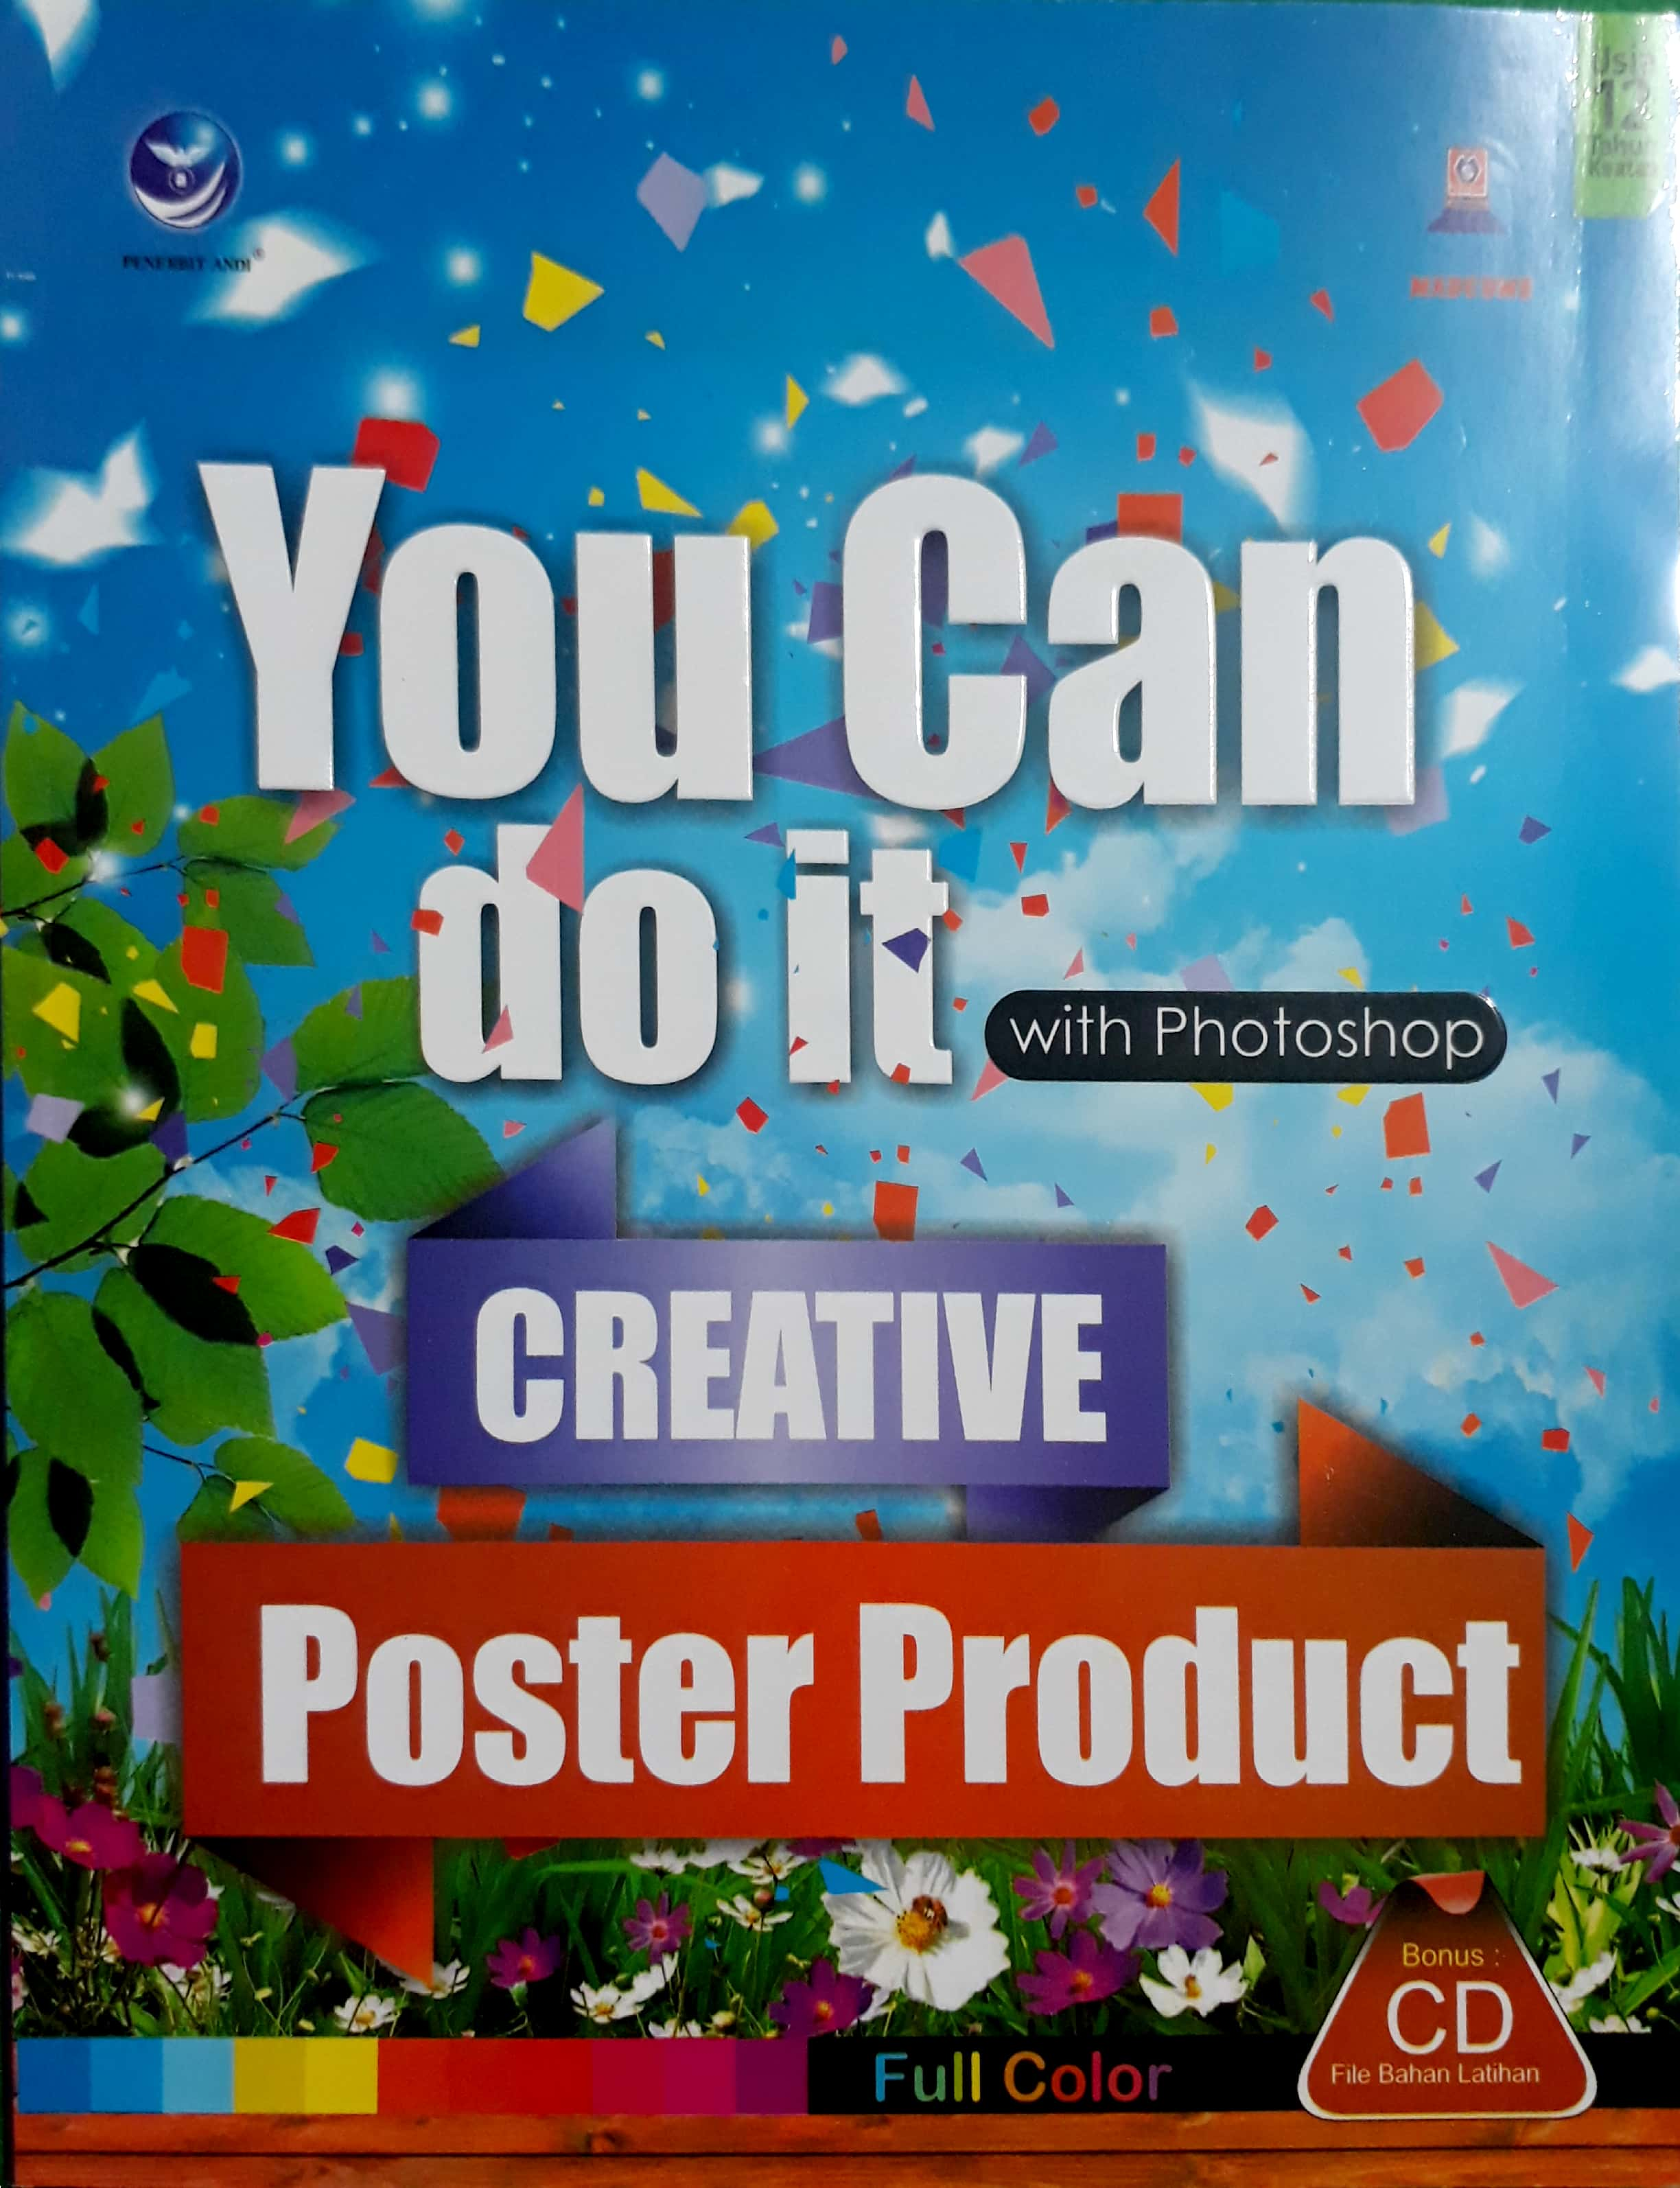 You Can do it with Photoshop creative poster product